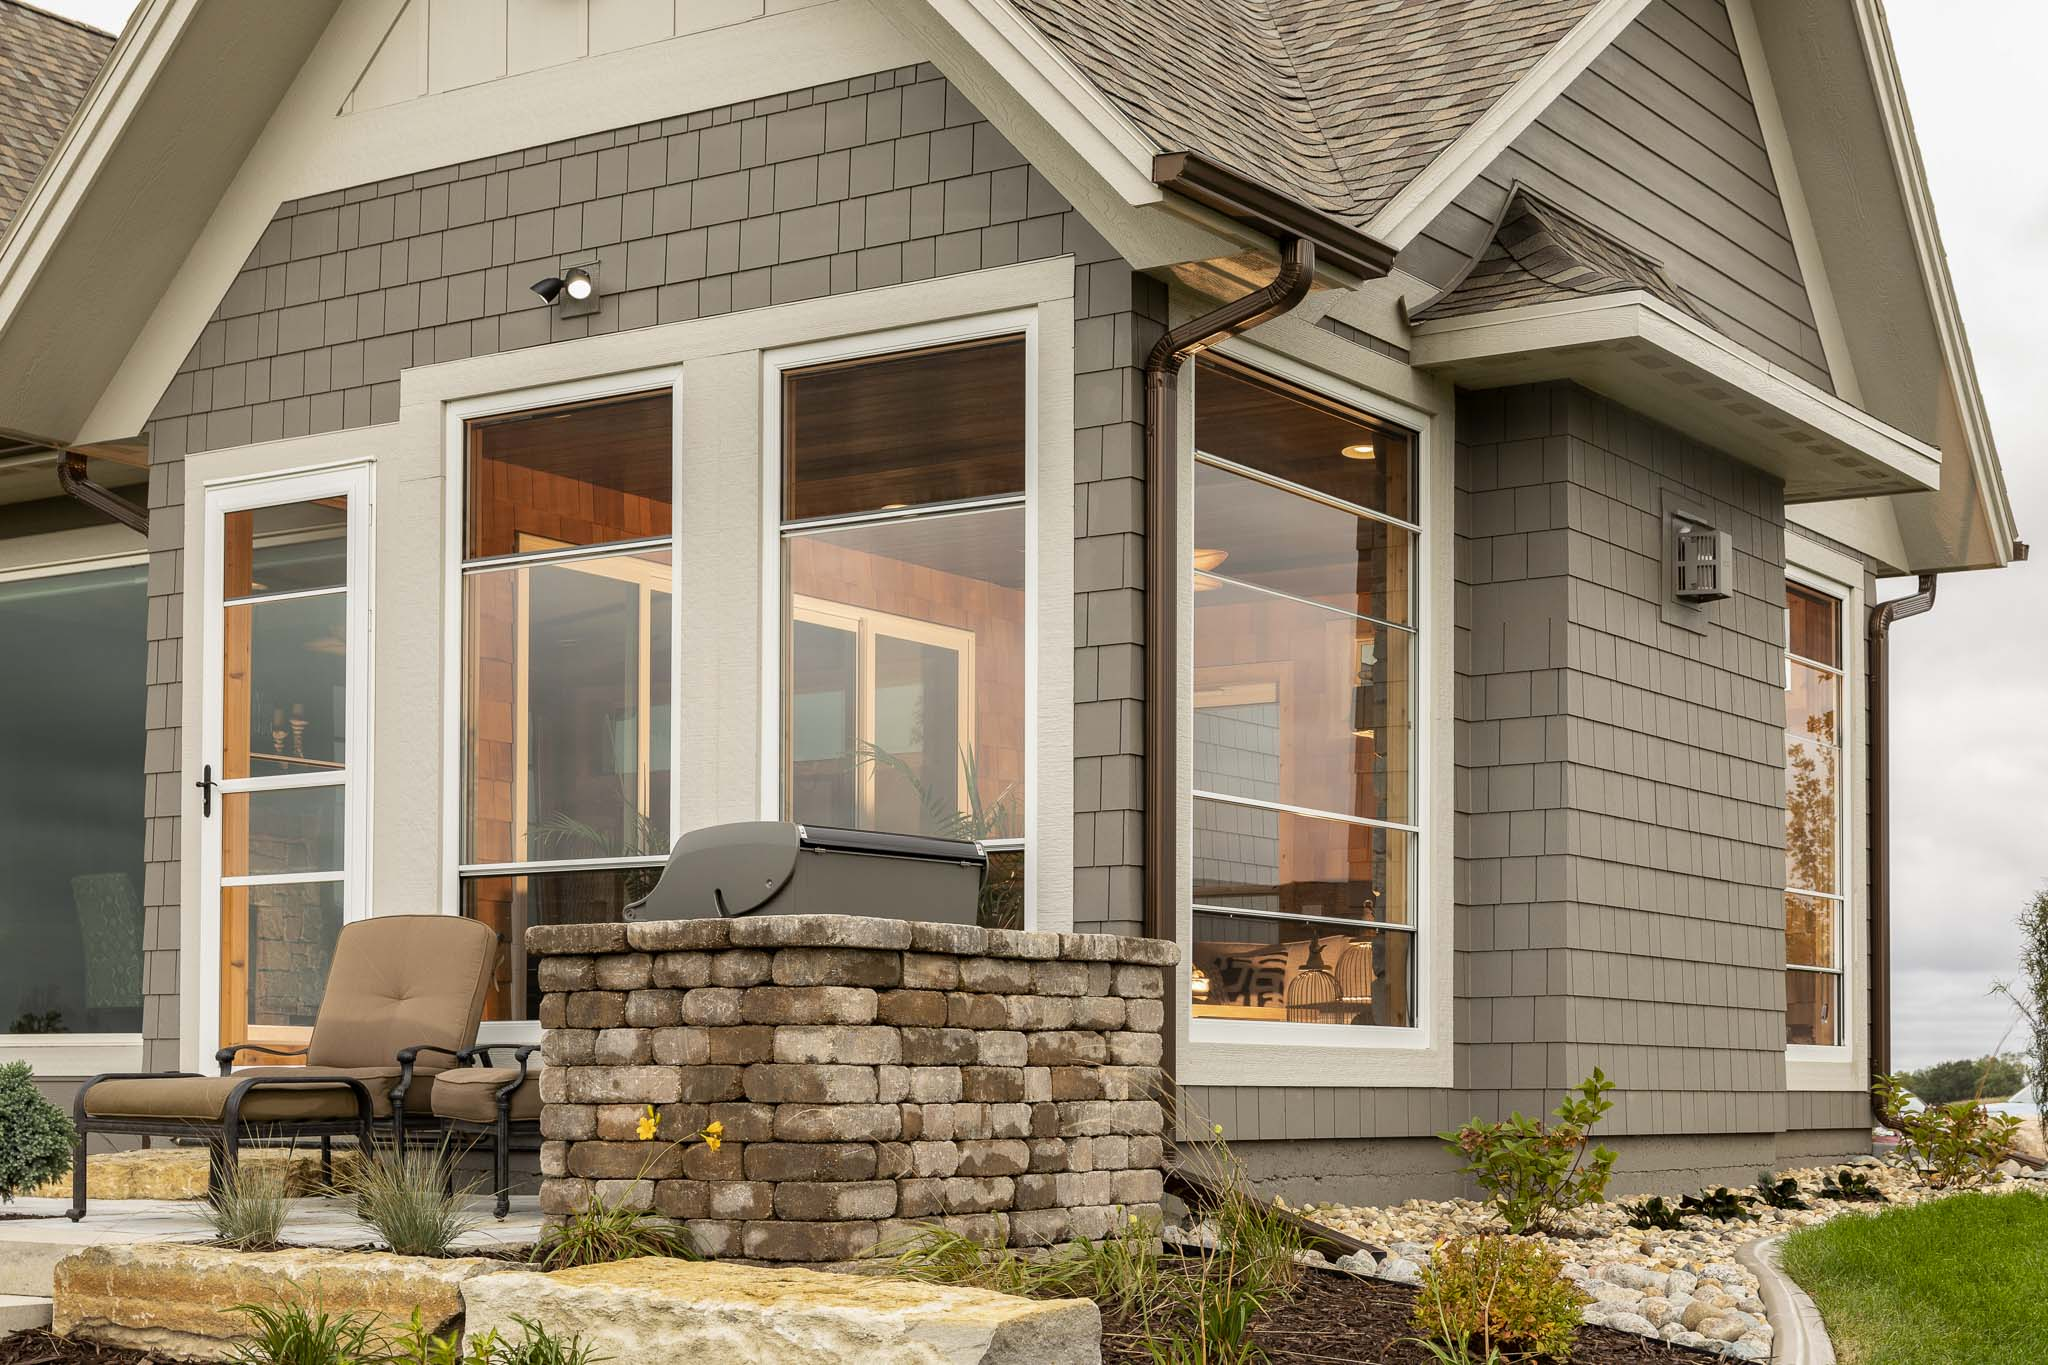 Scenic Porch Screen and Window Systems